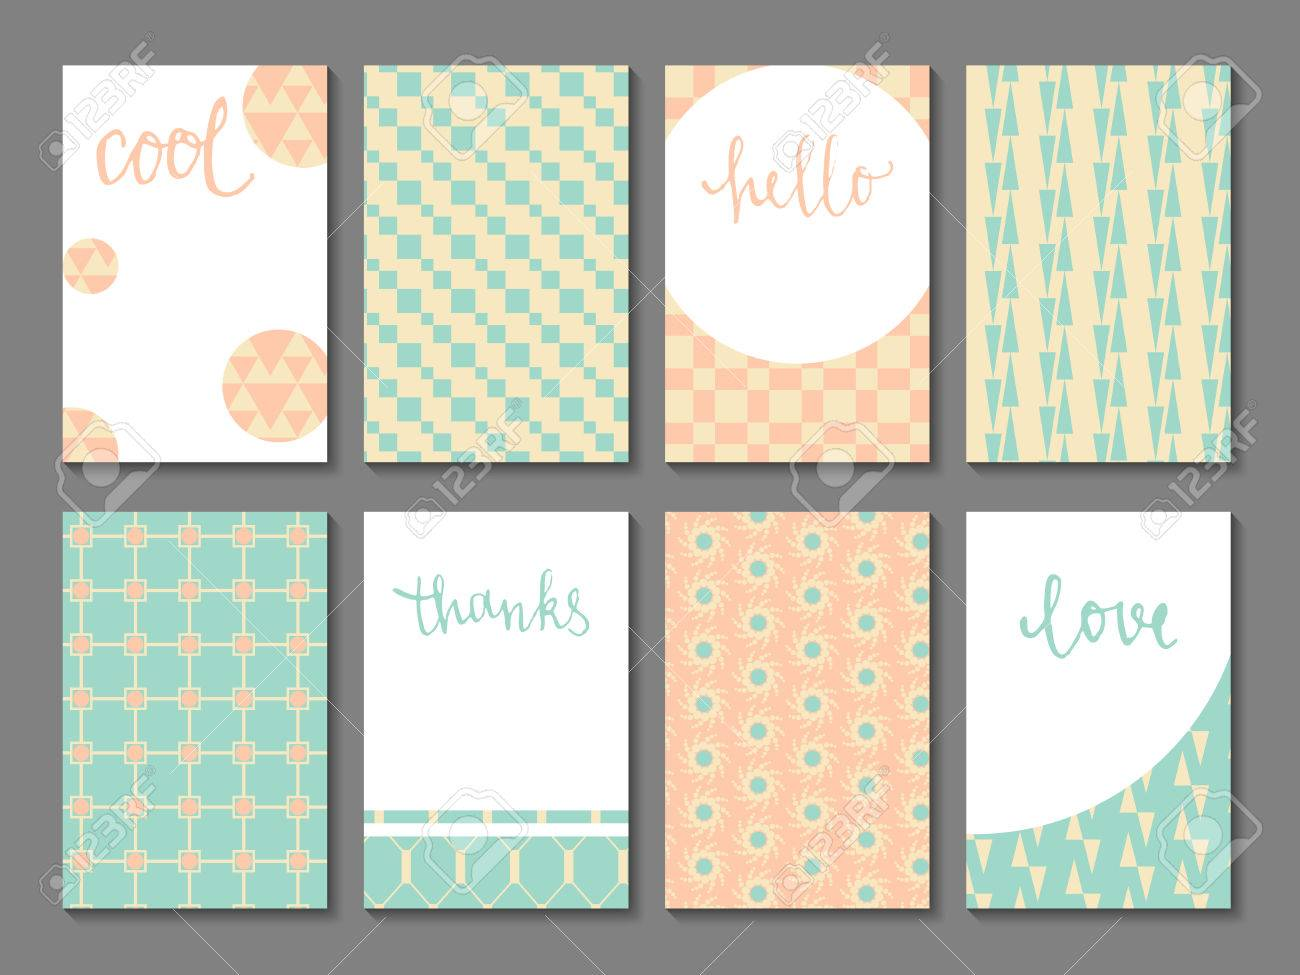 photo about Free Printable Journaling Cards called Fastened of printable journaling playing cards with basic practices, hand..